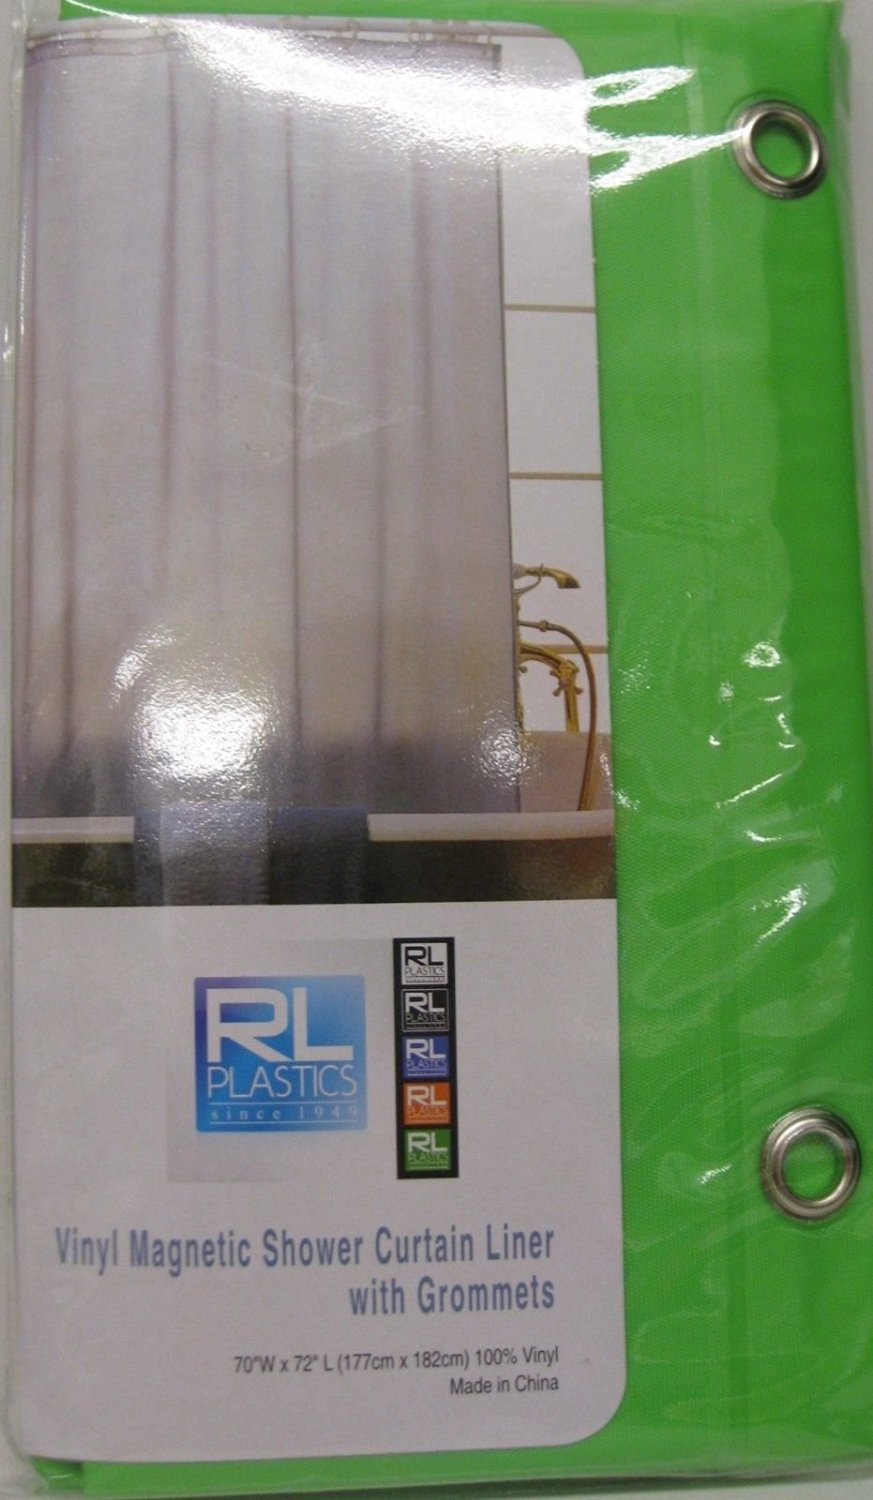 Home&Bath Collection Vinyl Magnetic Shower Curtain Liner with Grommets - 70 x 72 - (Green)